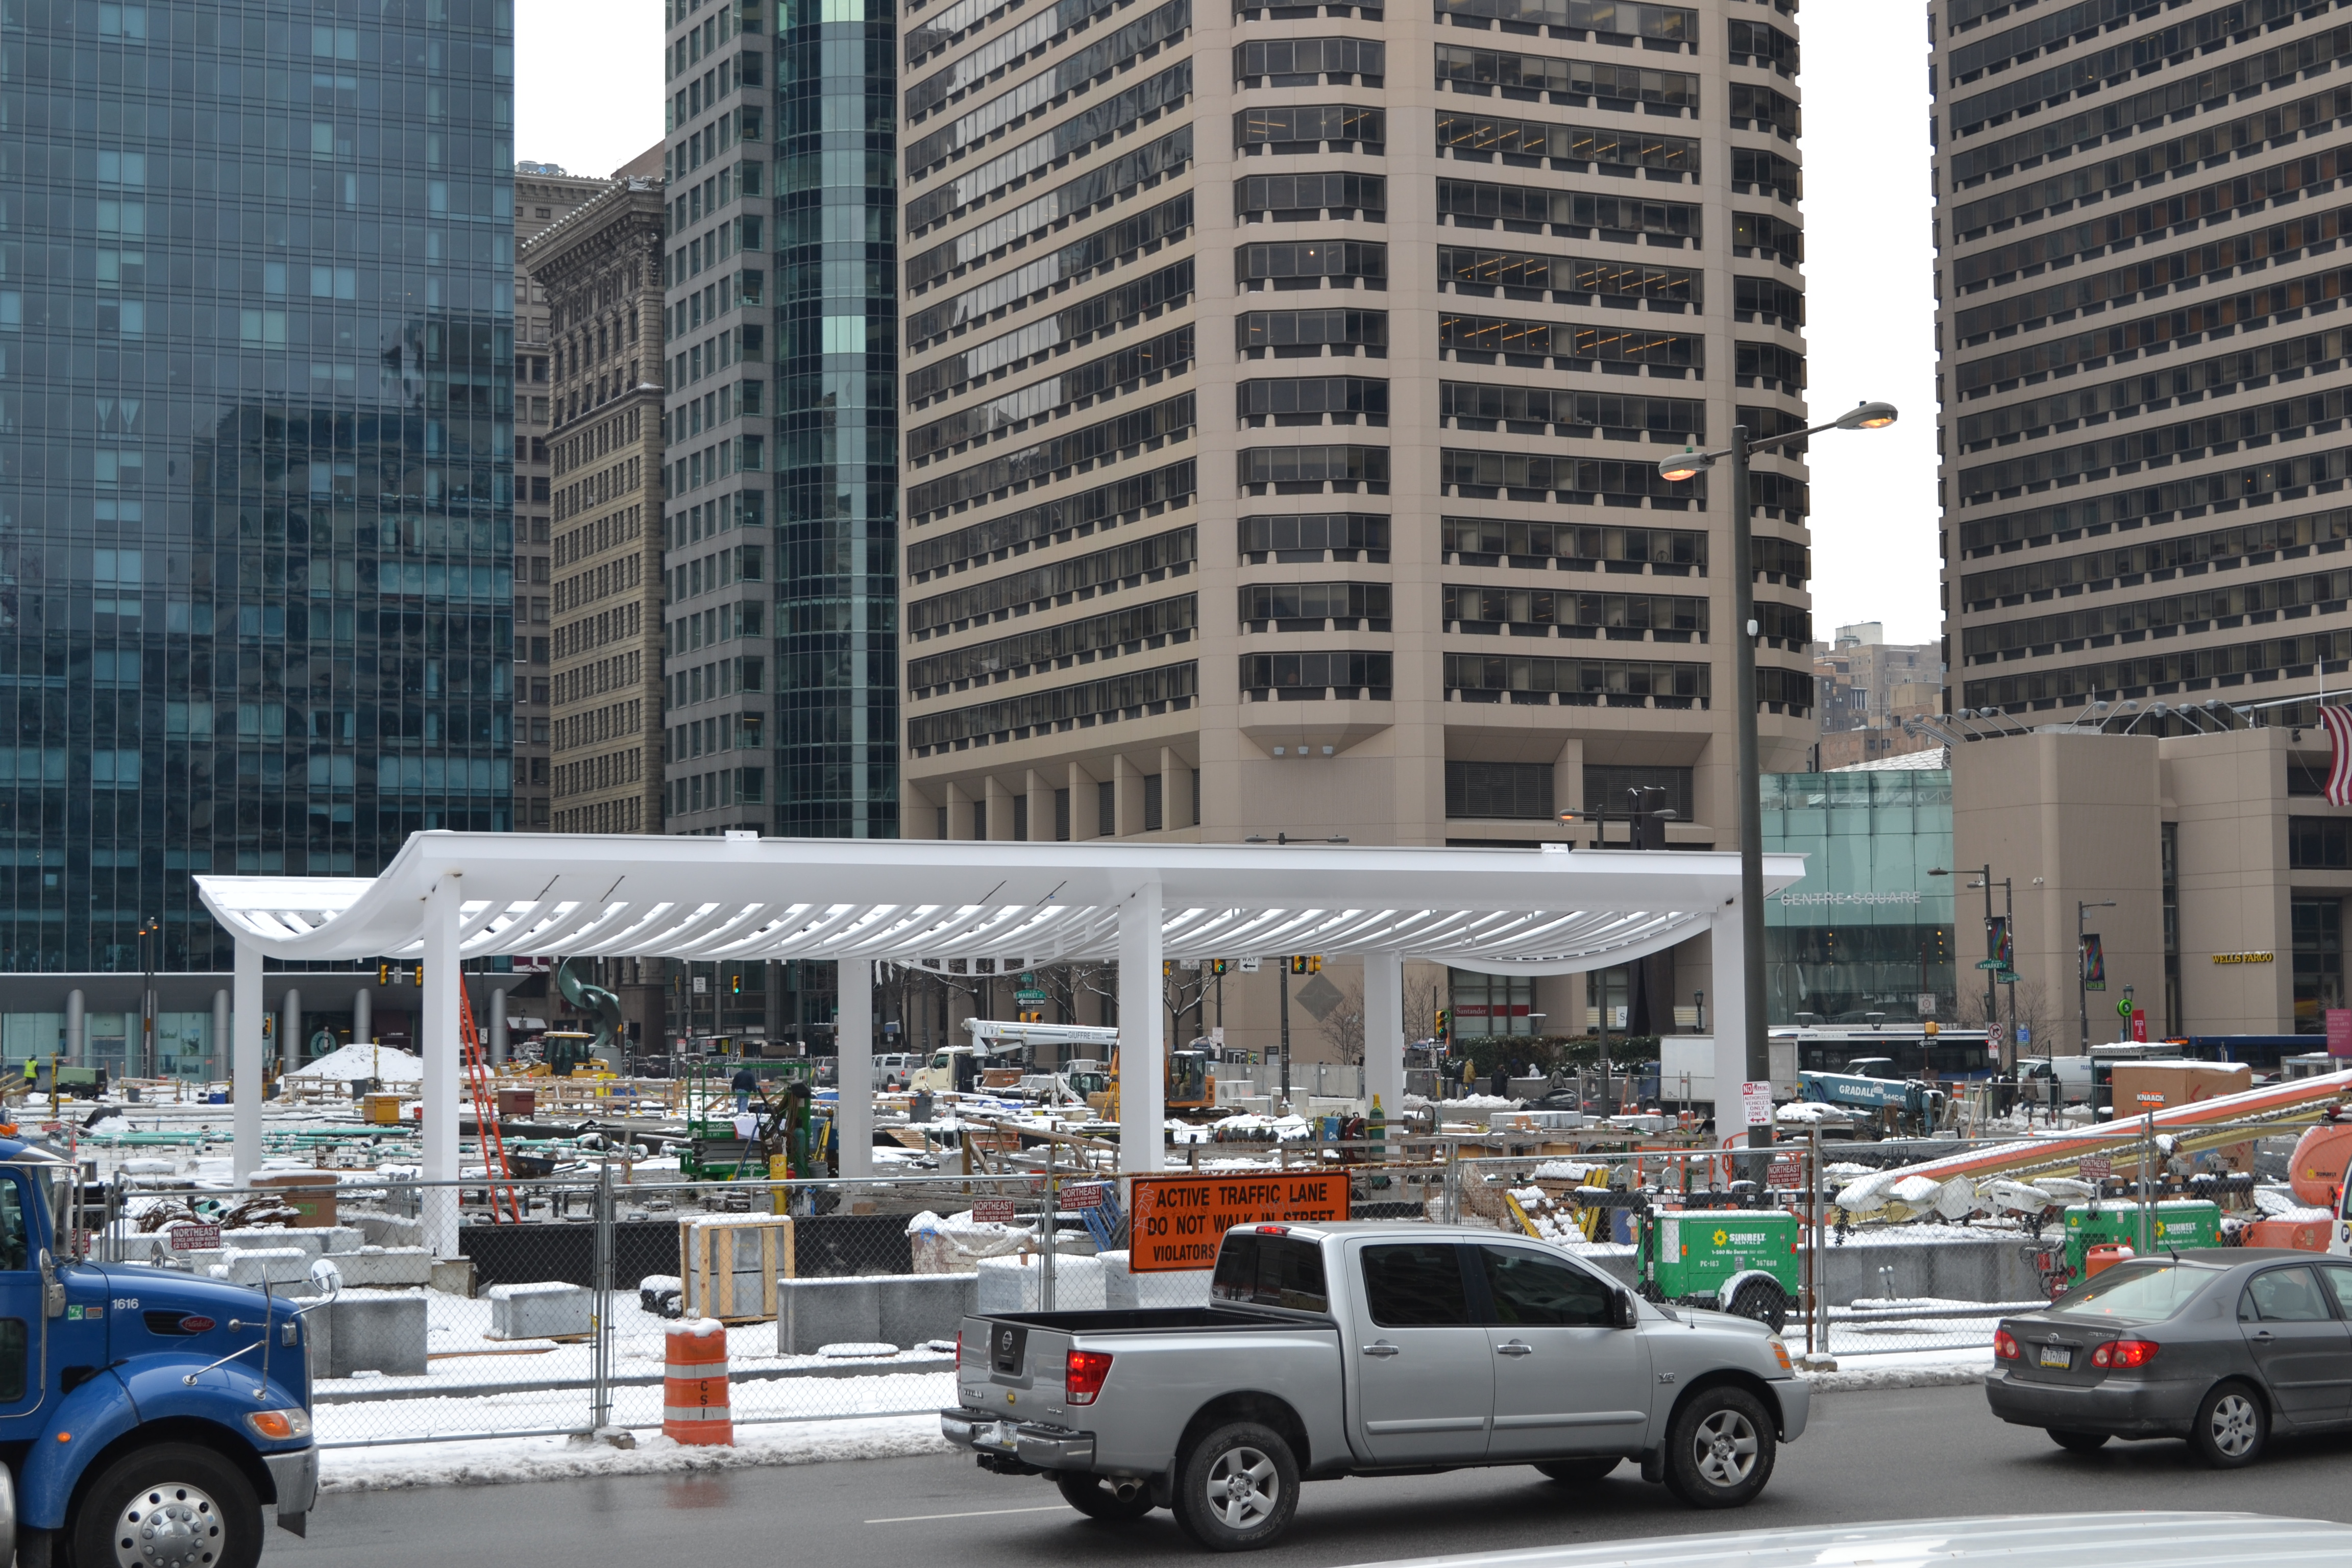 The new structure at the north end of Dilworth Plaza will house a cafe, entrances to the transit network below and an information booth